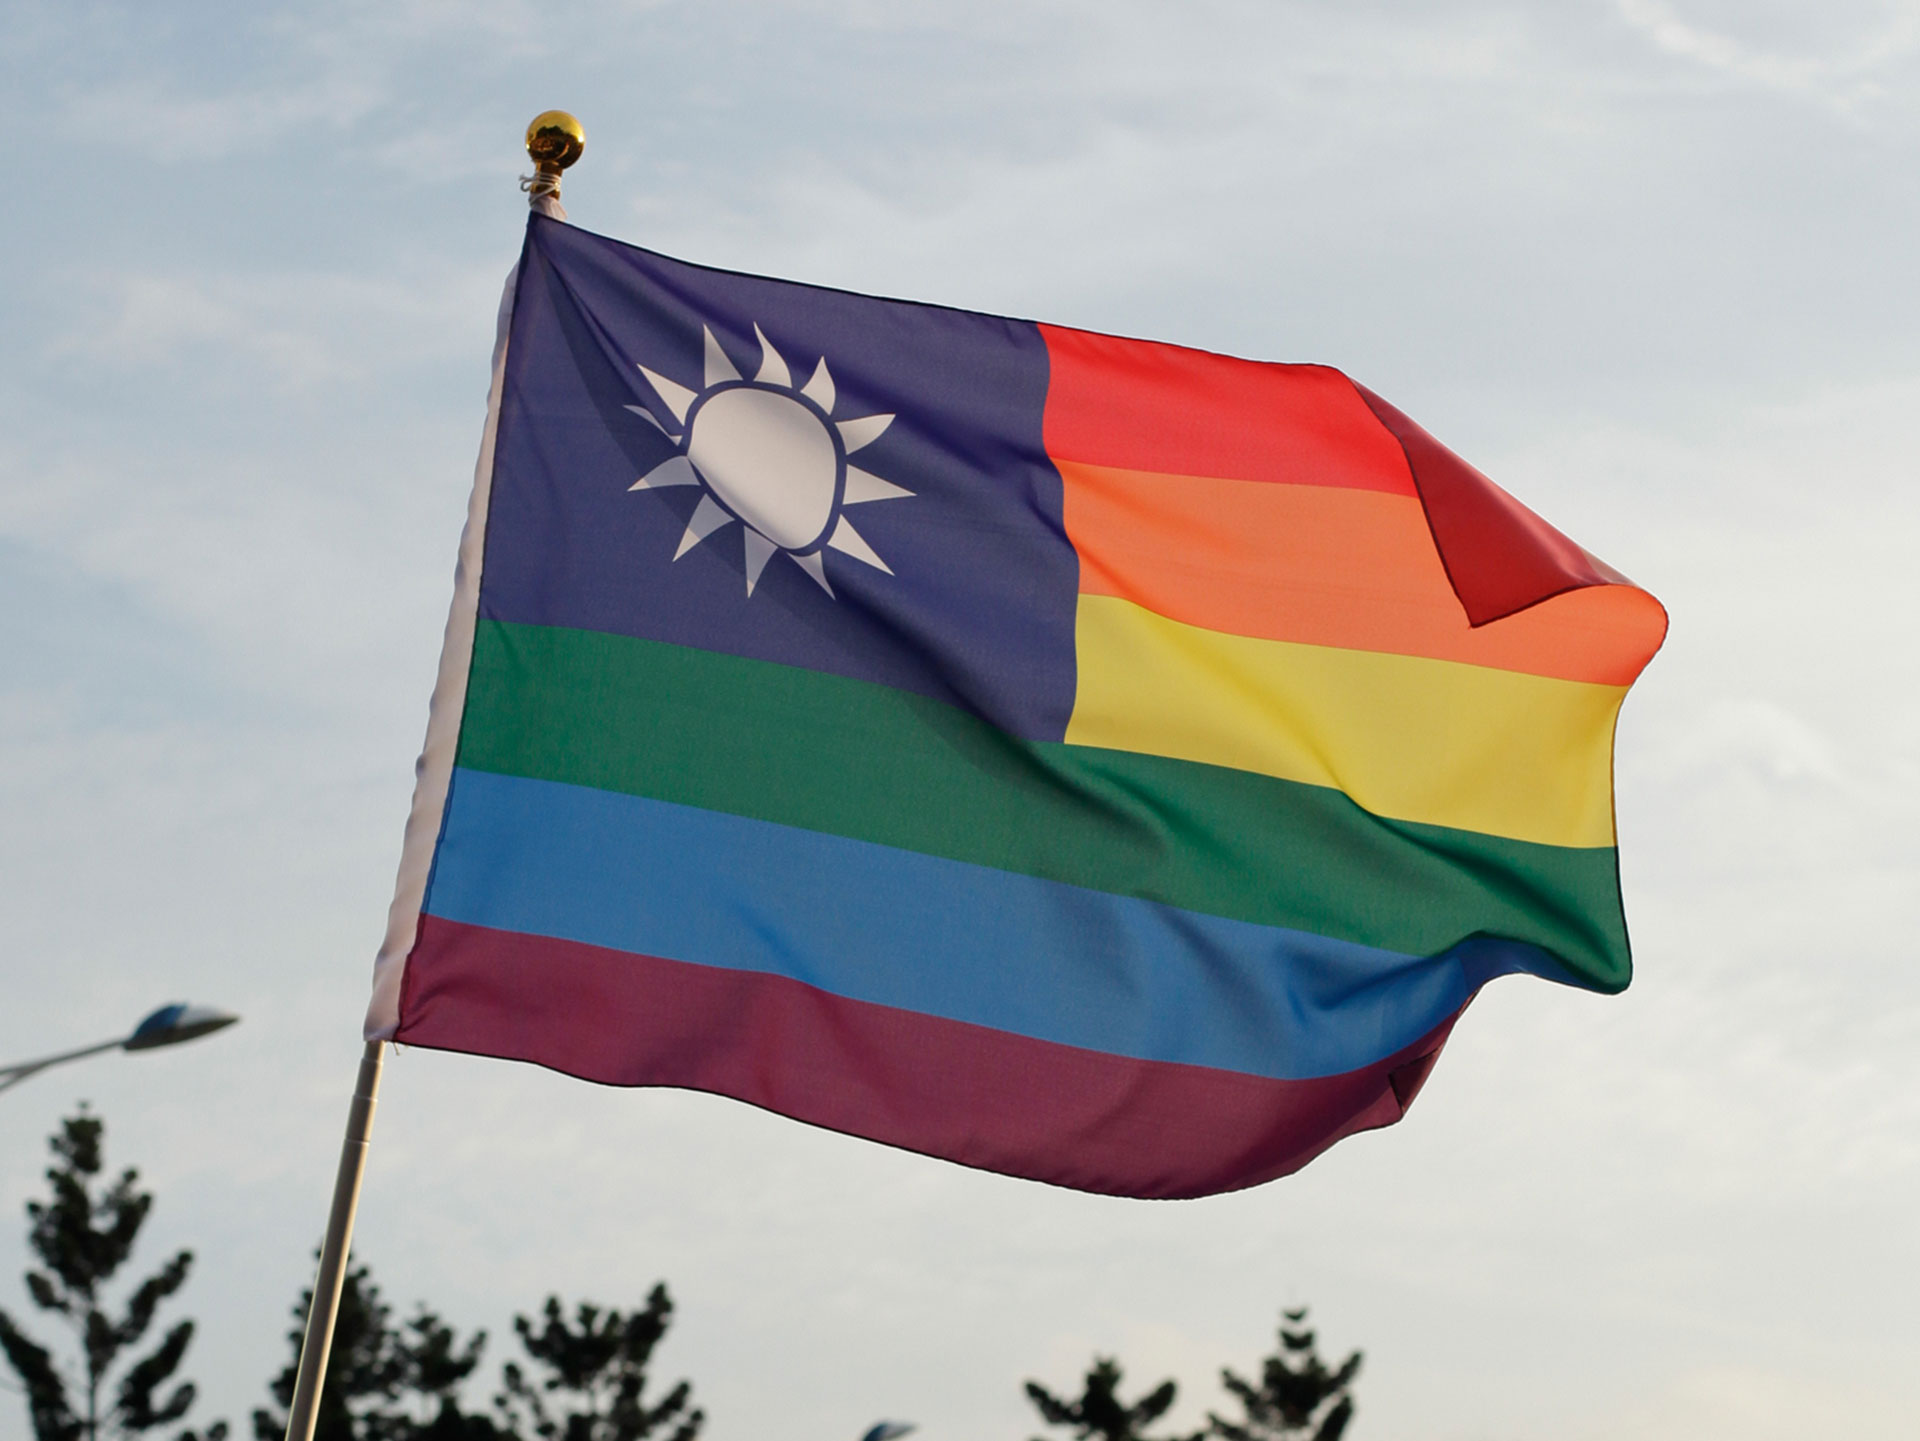 Taiwan's top court rules in favour of same-sex marriage